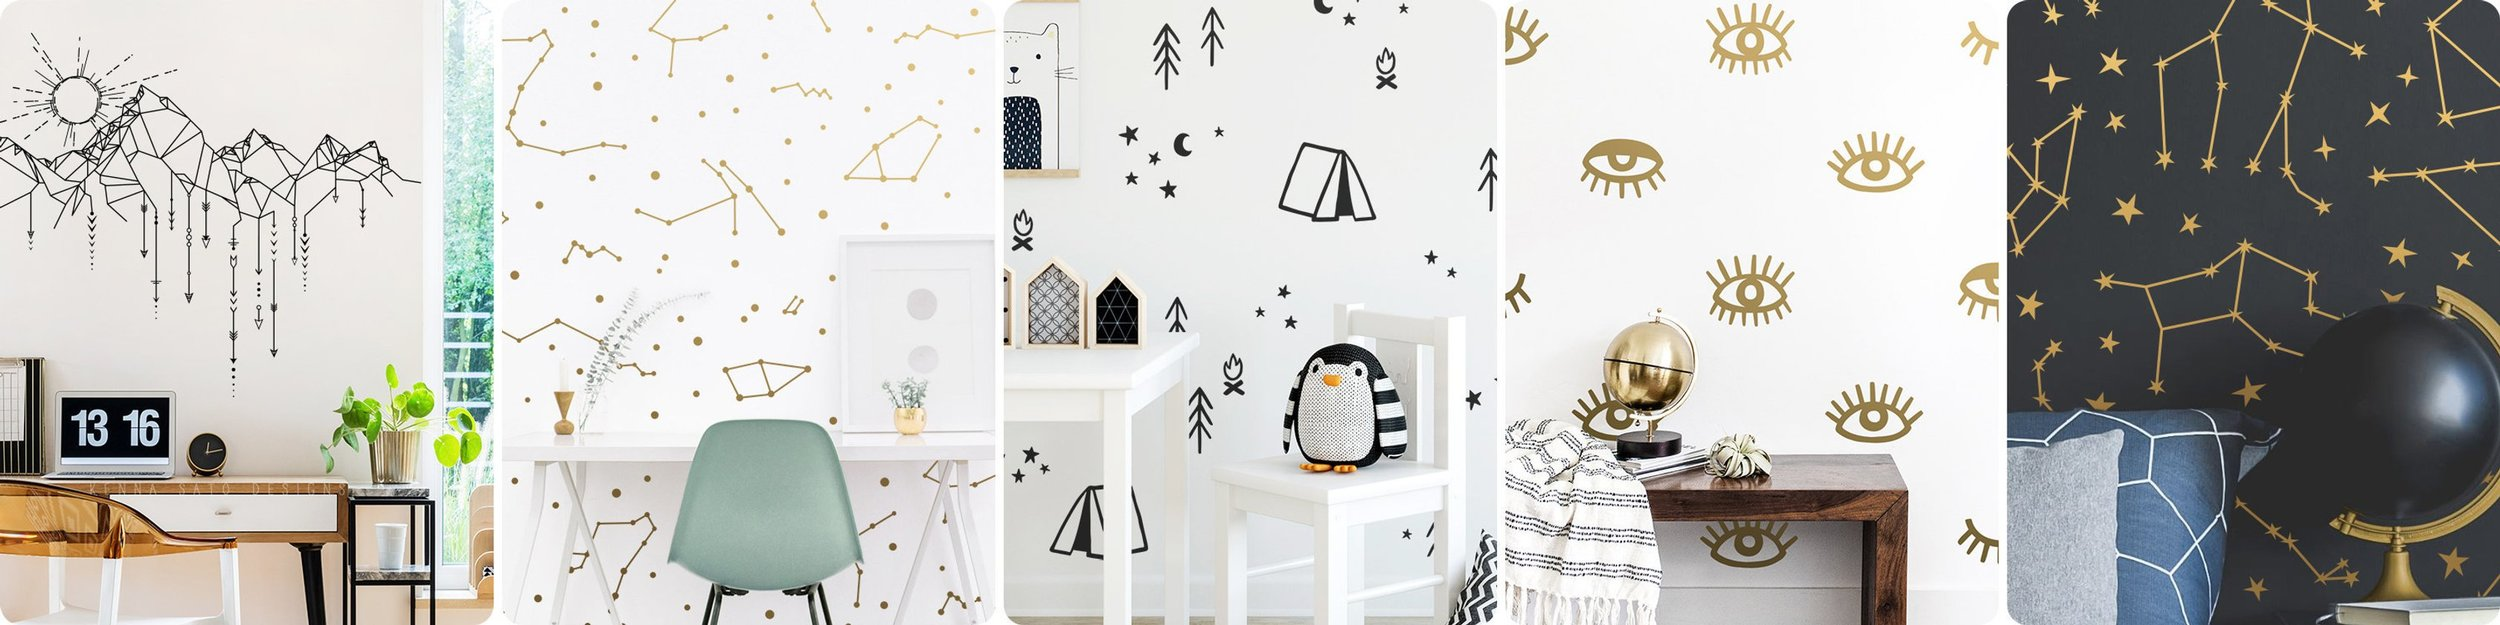 Modern and Trendy Wall Decals By Kenna Sato Designs